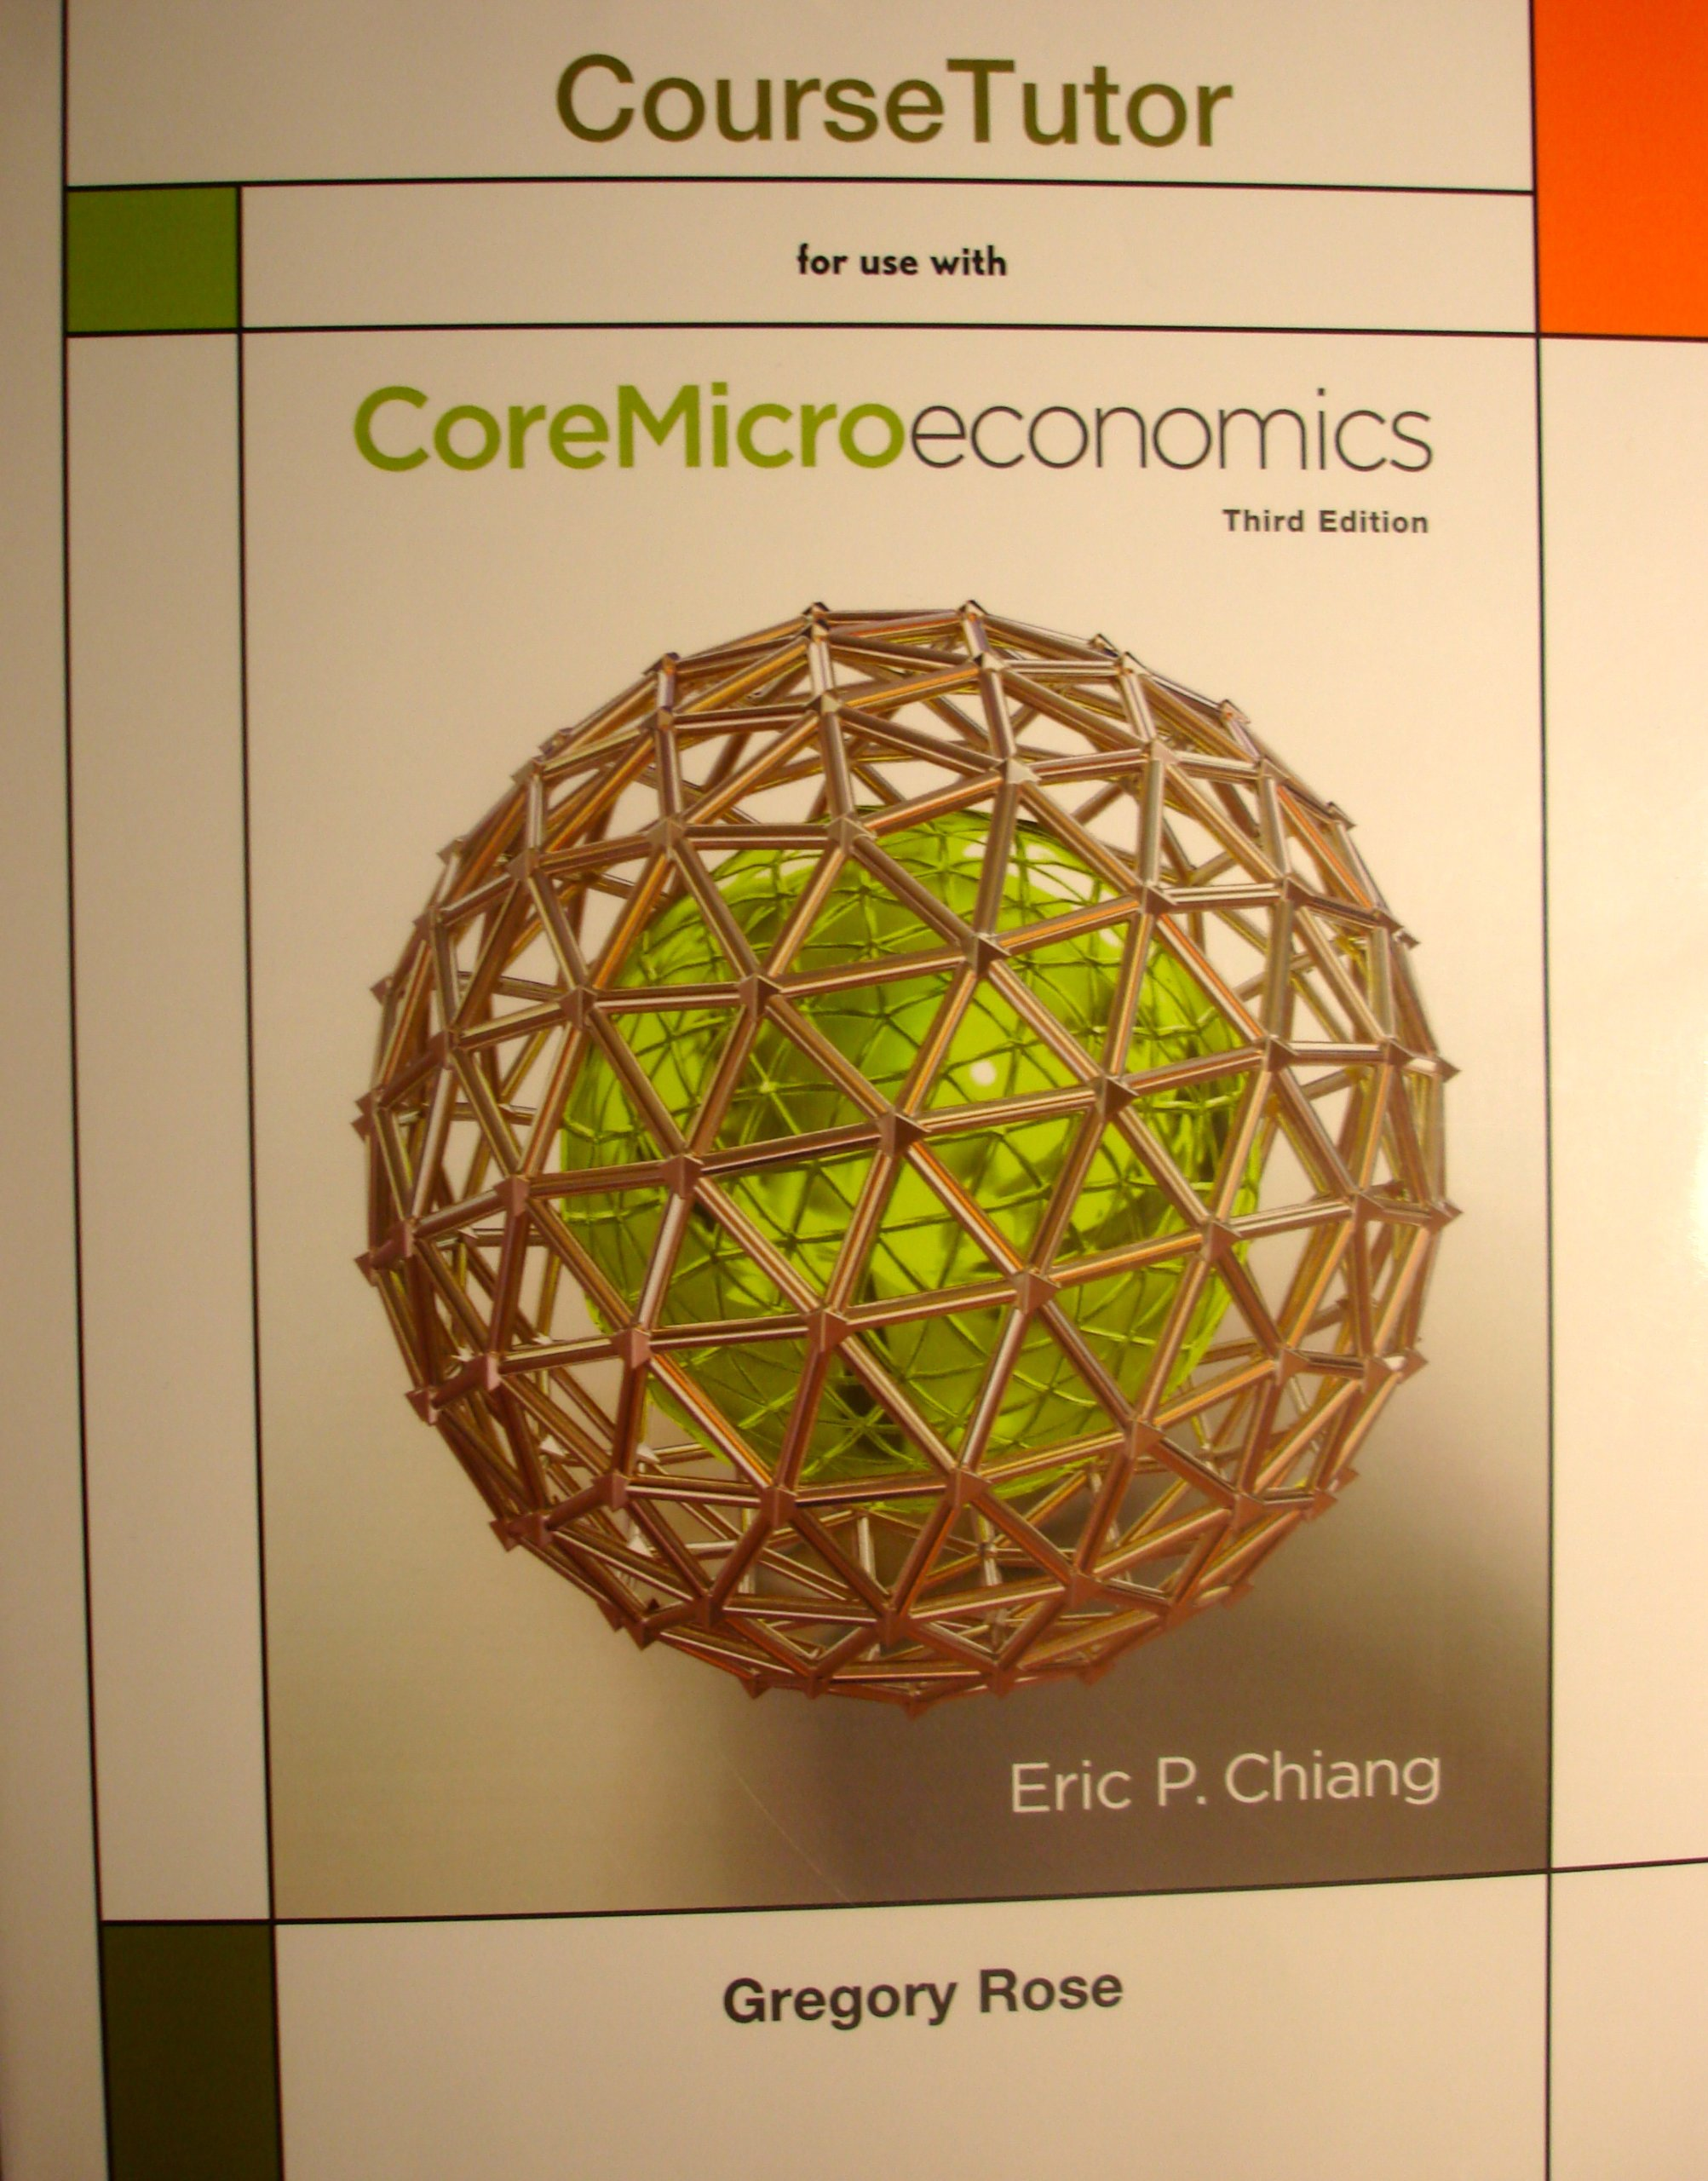 Course Tutor for Coremicroeconomics by Worth Publishers